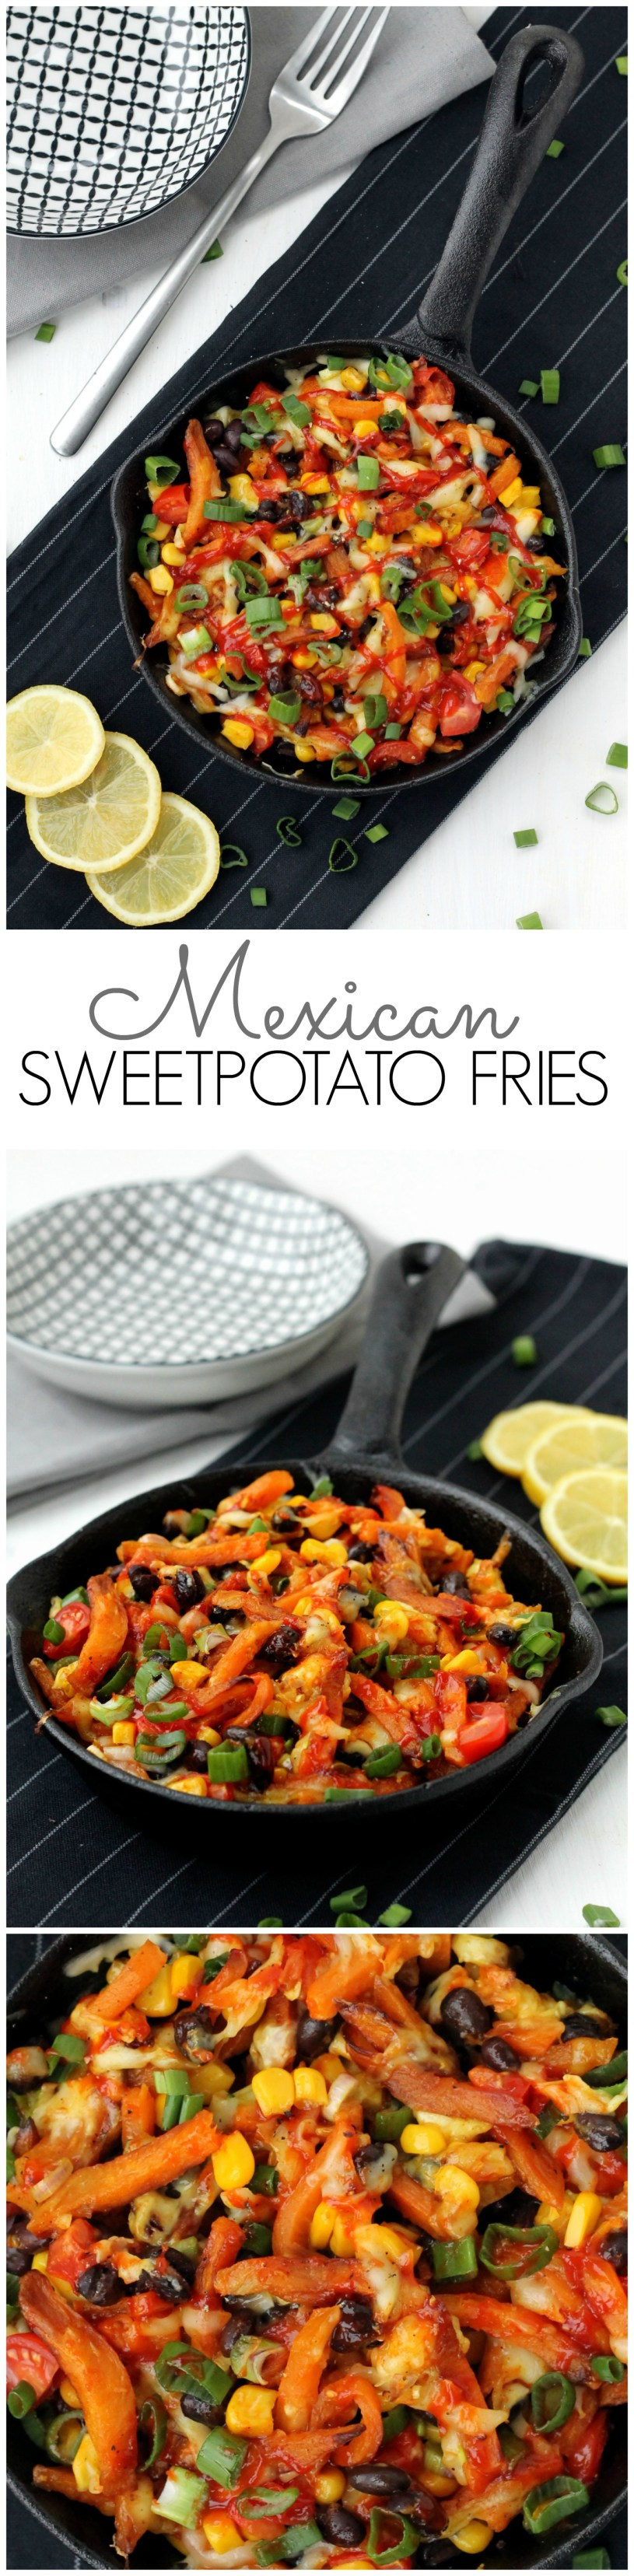 mexican_sweetpotato_fries